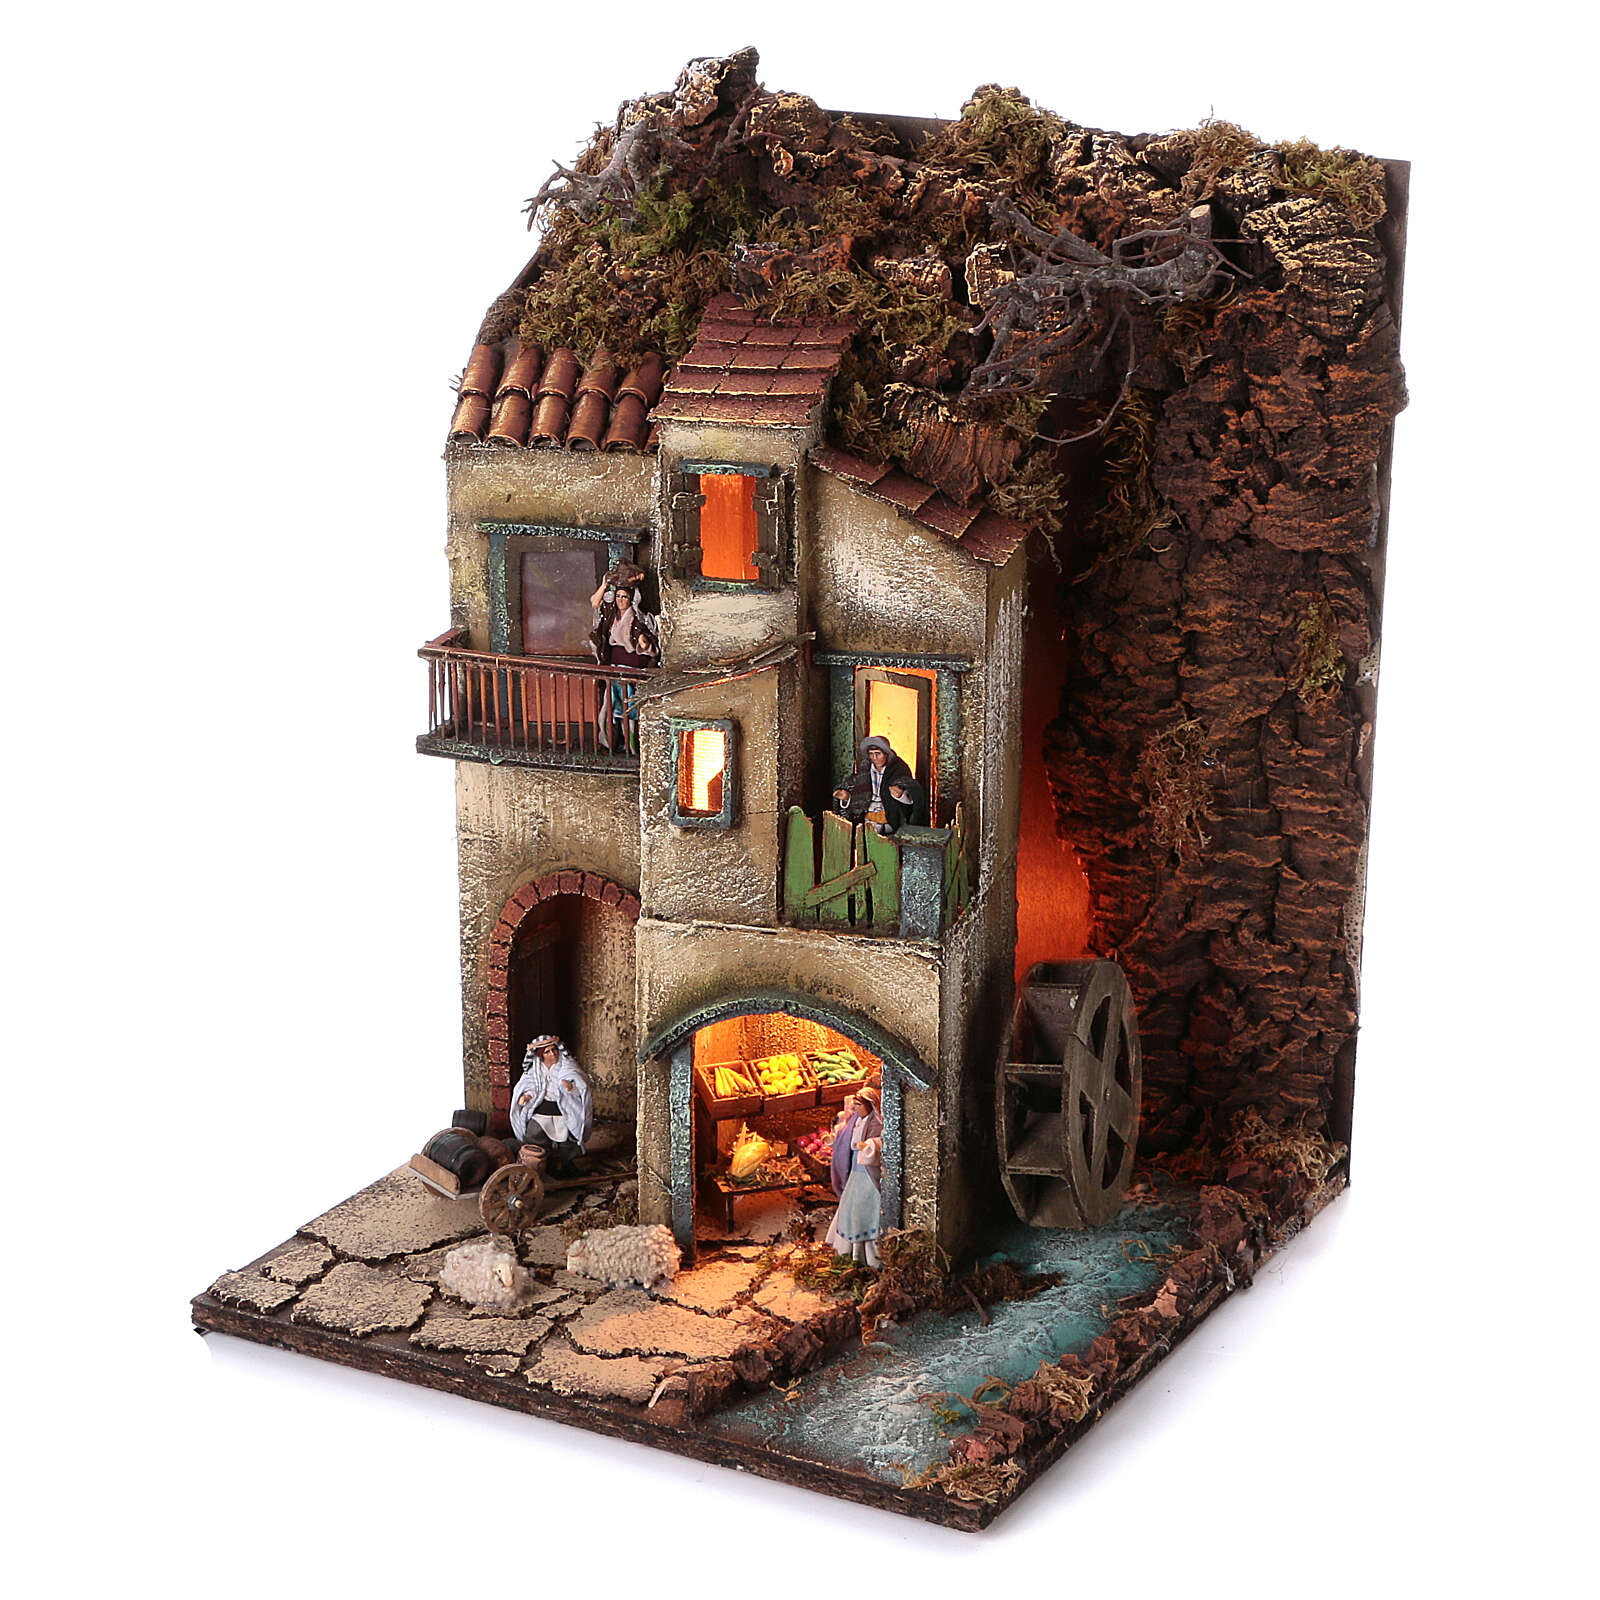 Neapolitan nativity village 8 cm figures with watermill 55x40x40 module 3 4